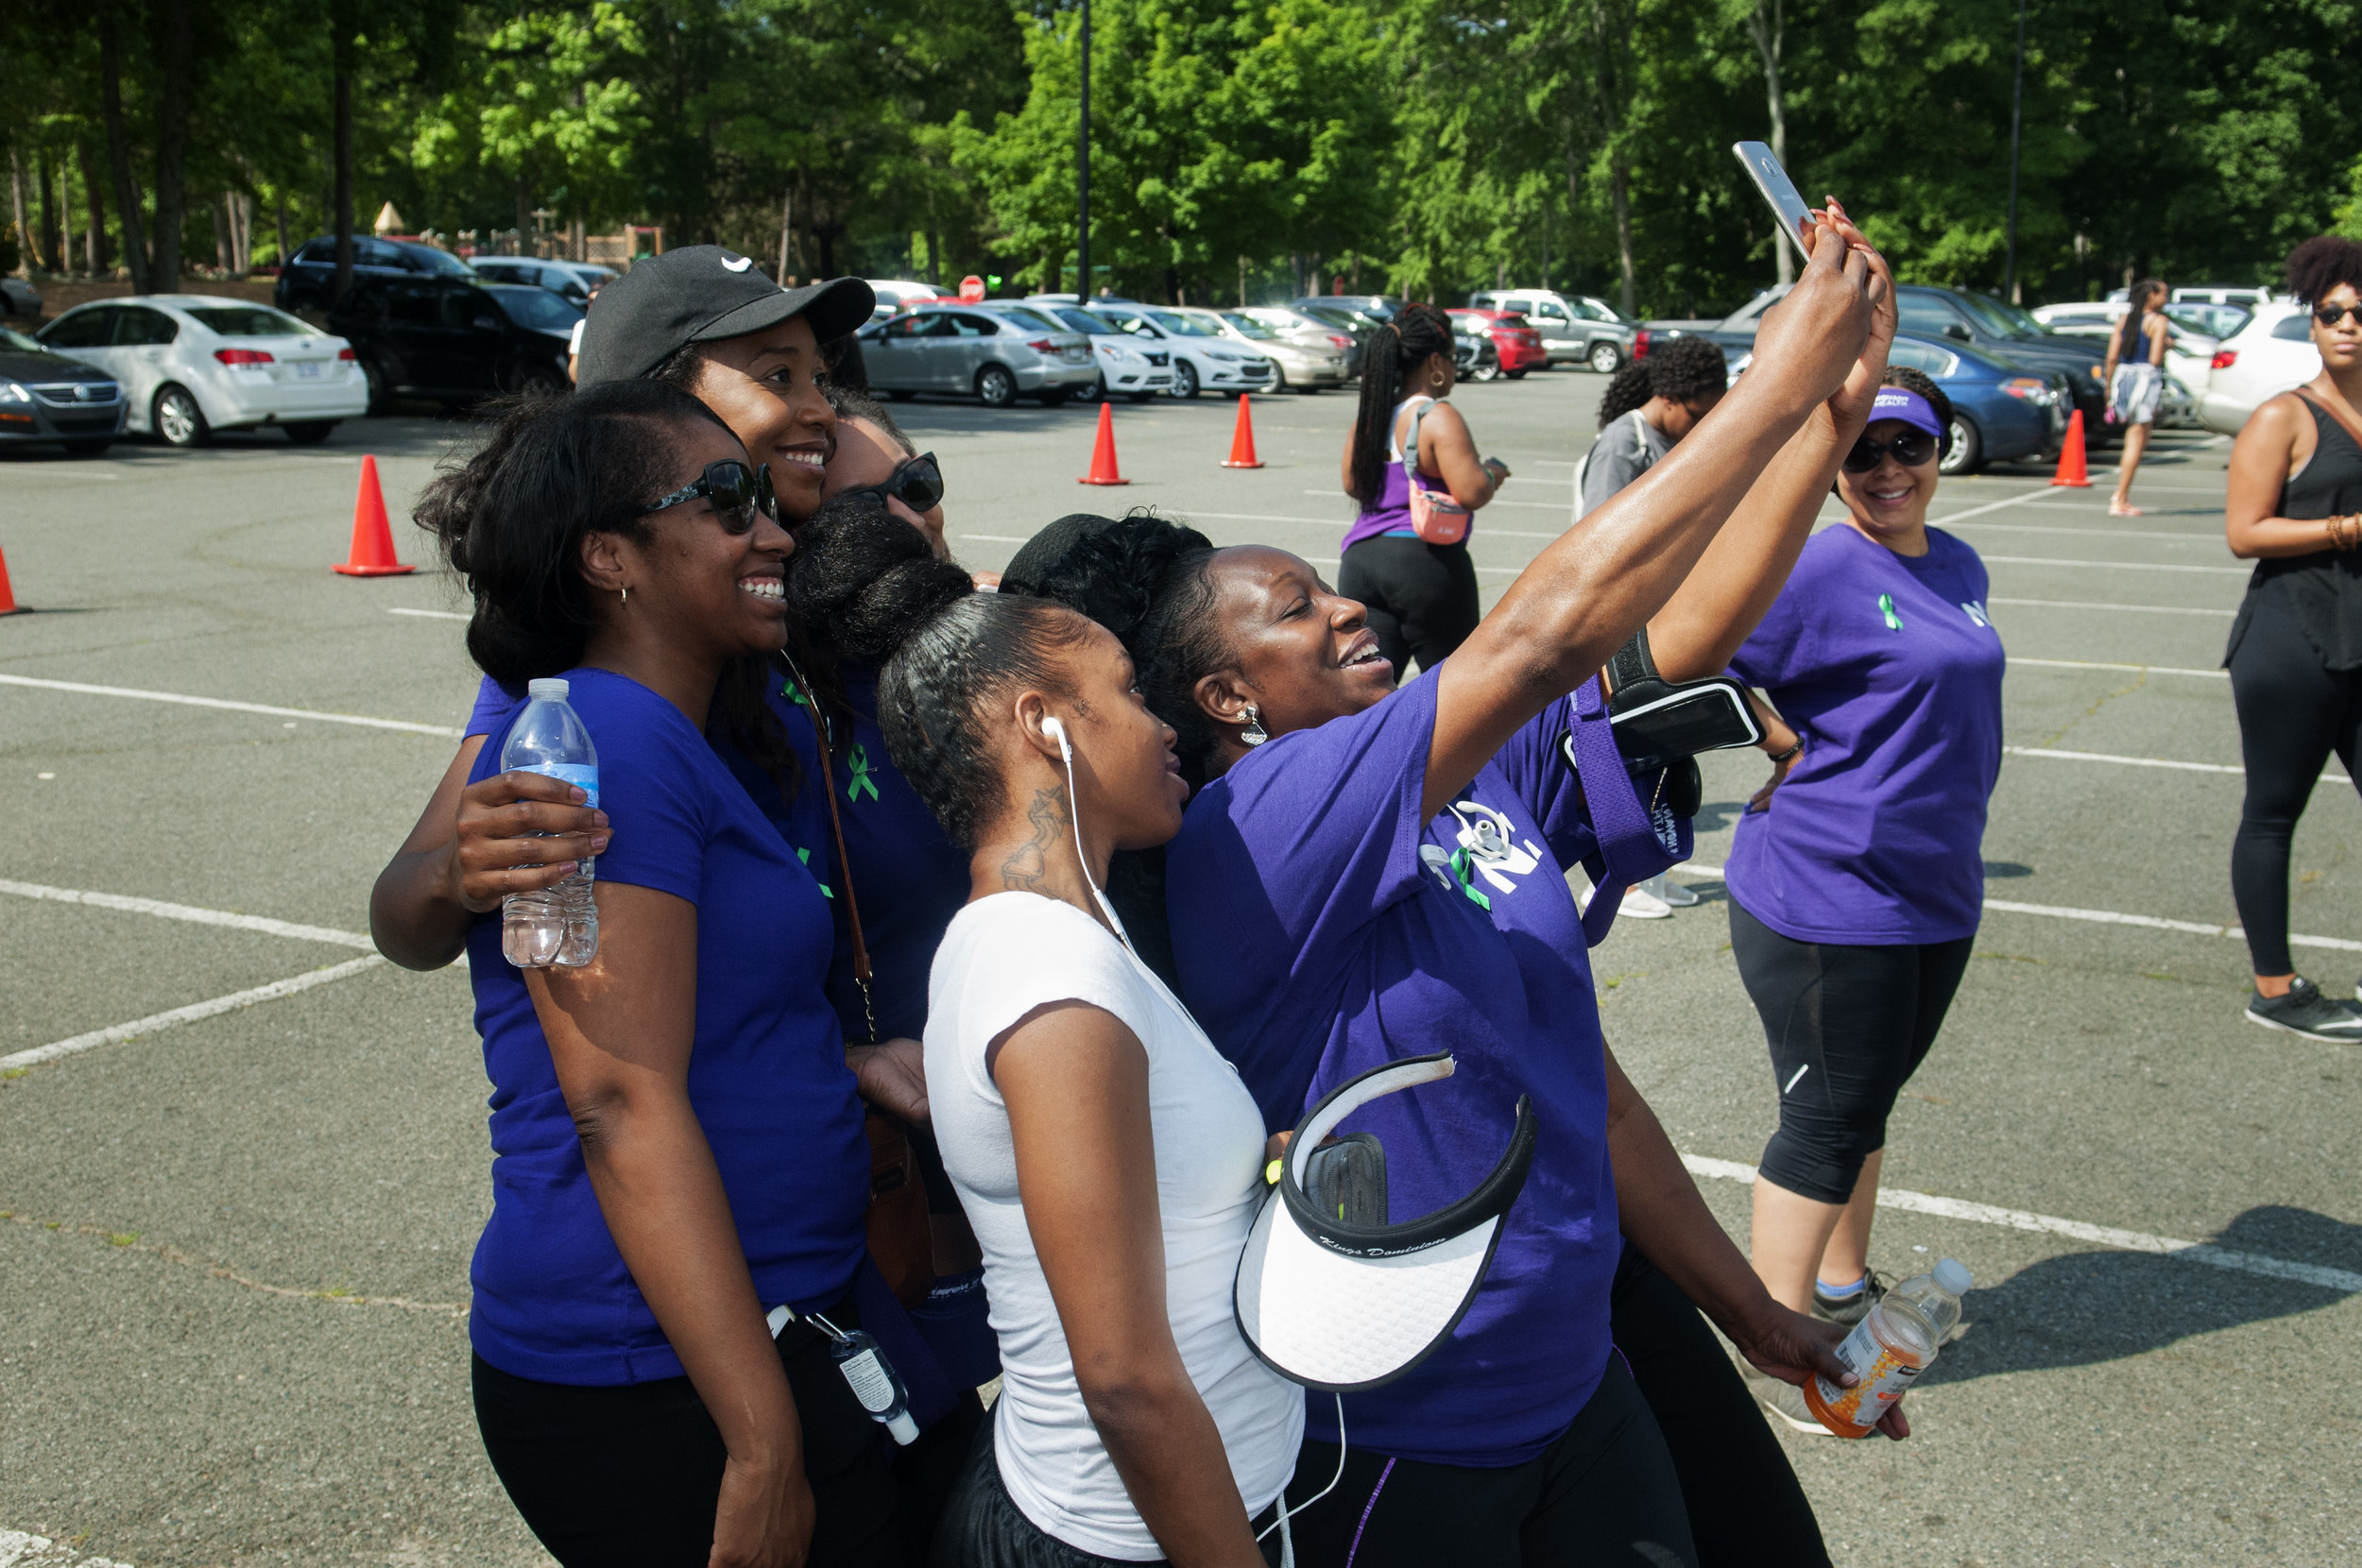 2nd Annual Let's Talk About It Mental Health Awareness Walk @ Park Rd Park 5-20-17 by Jon Strayhorn 086.jpg